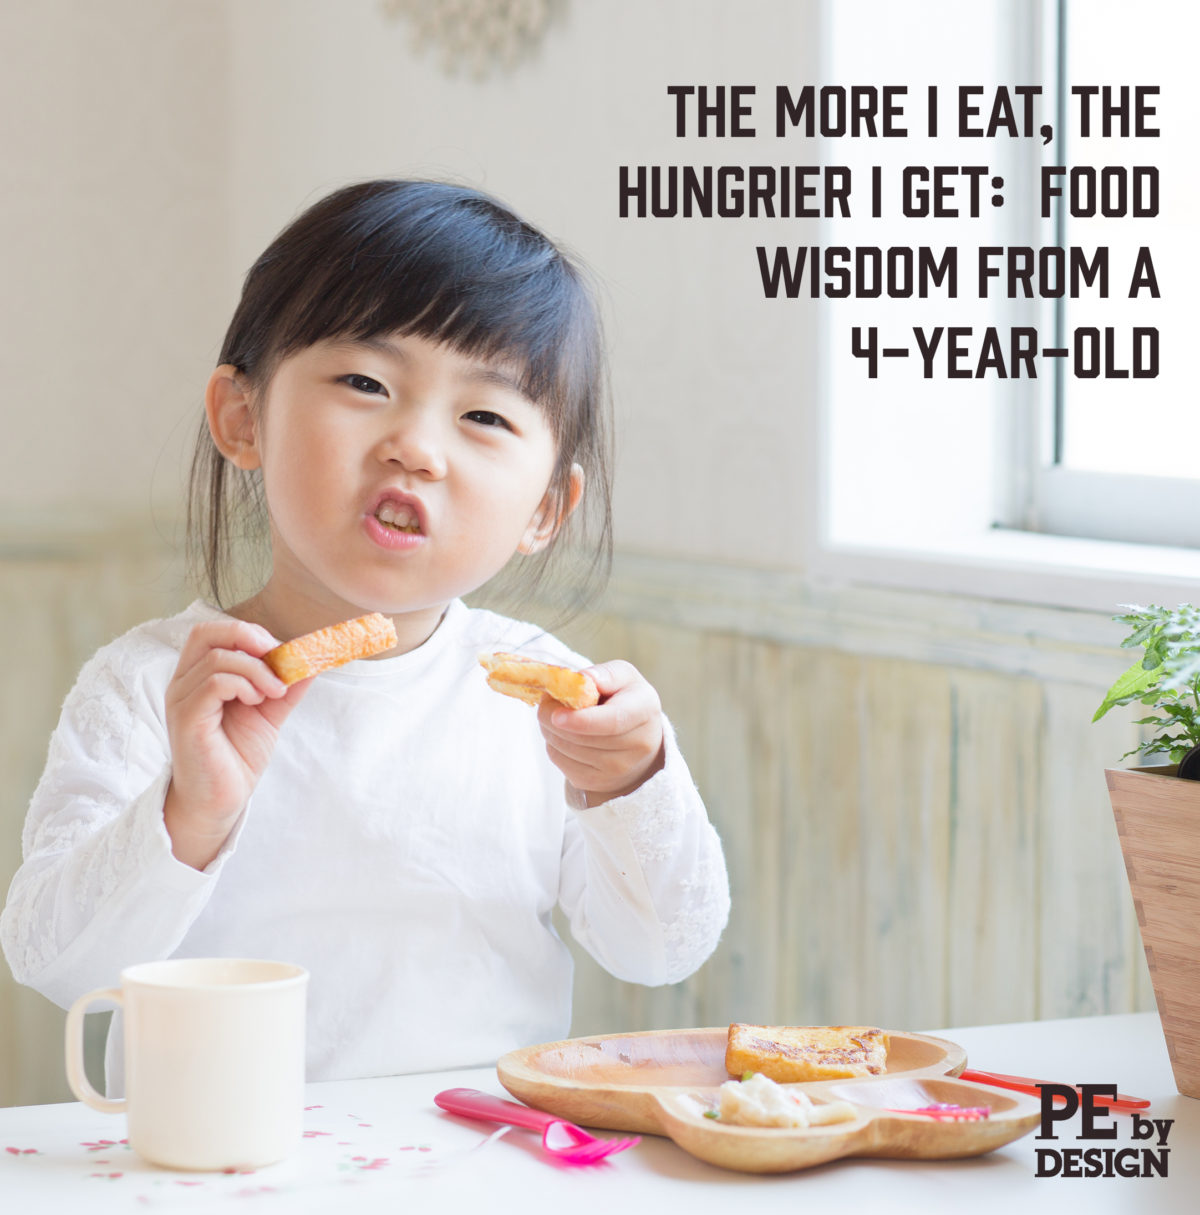 The More I Eat, the Hungrier I Get: Food Wisdom from a 4-Year-Old